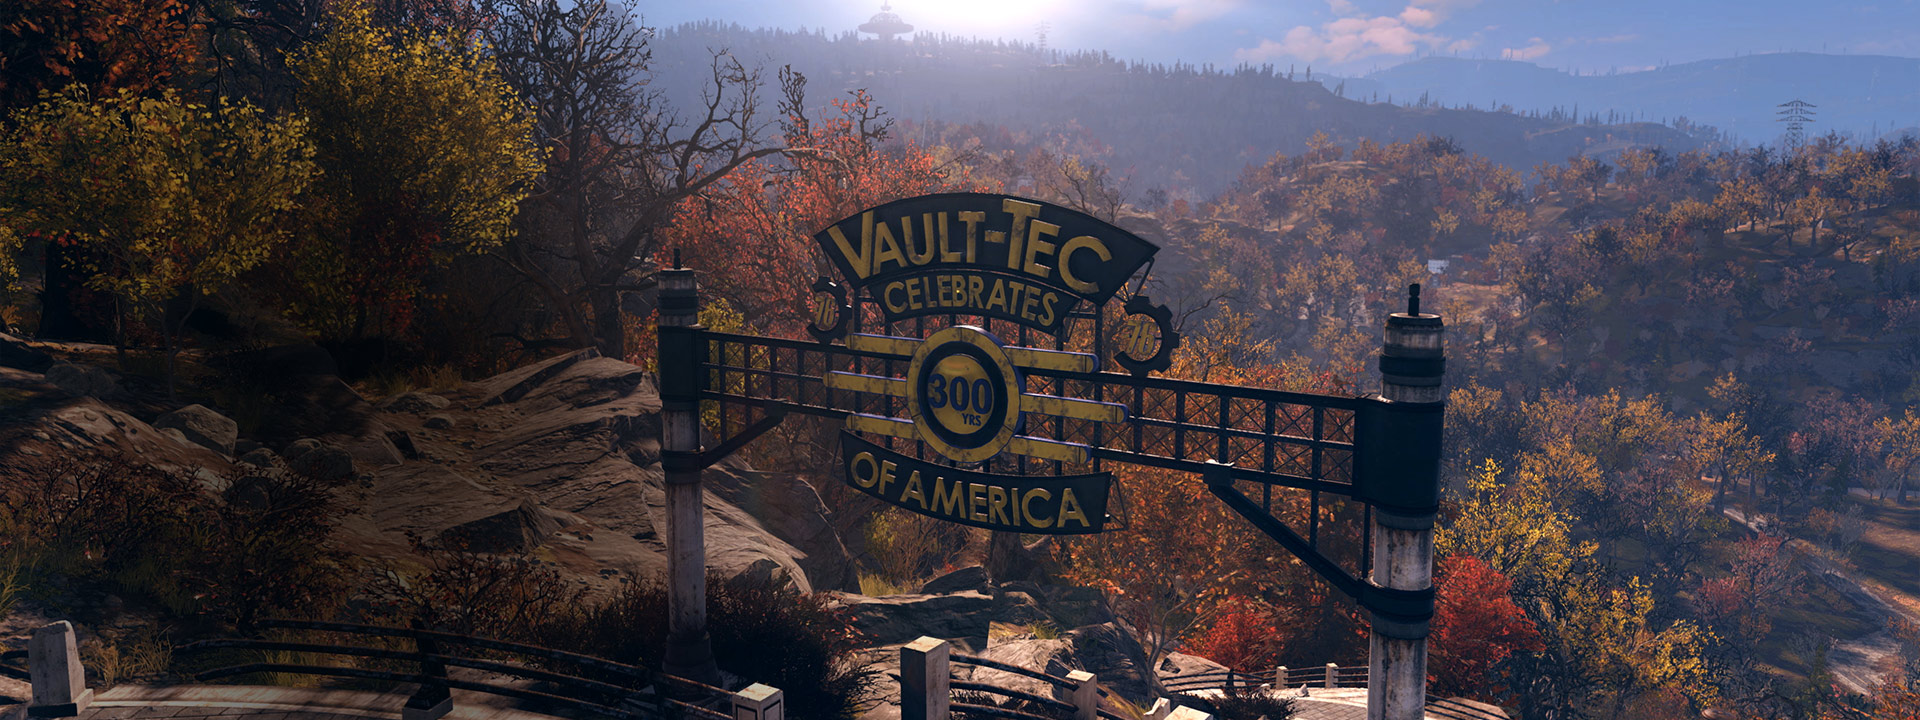 A Vault-tec sign celebrating 300 years of America outside vault 76